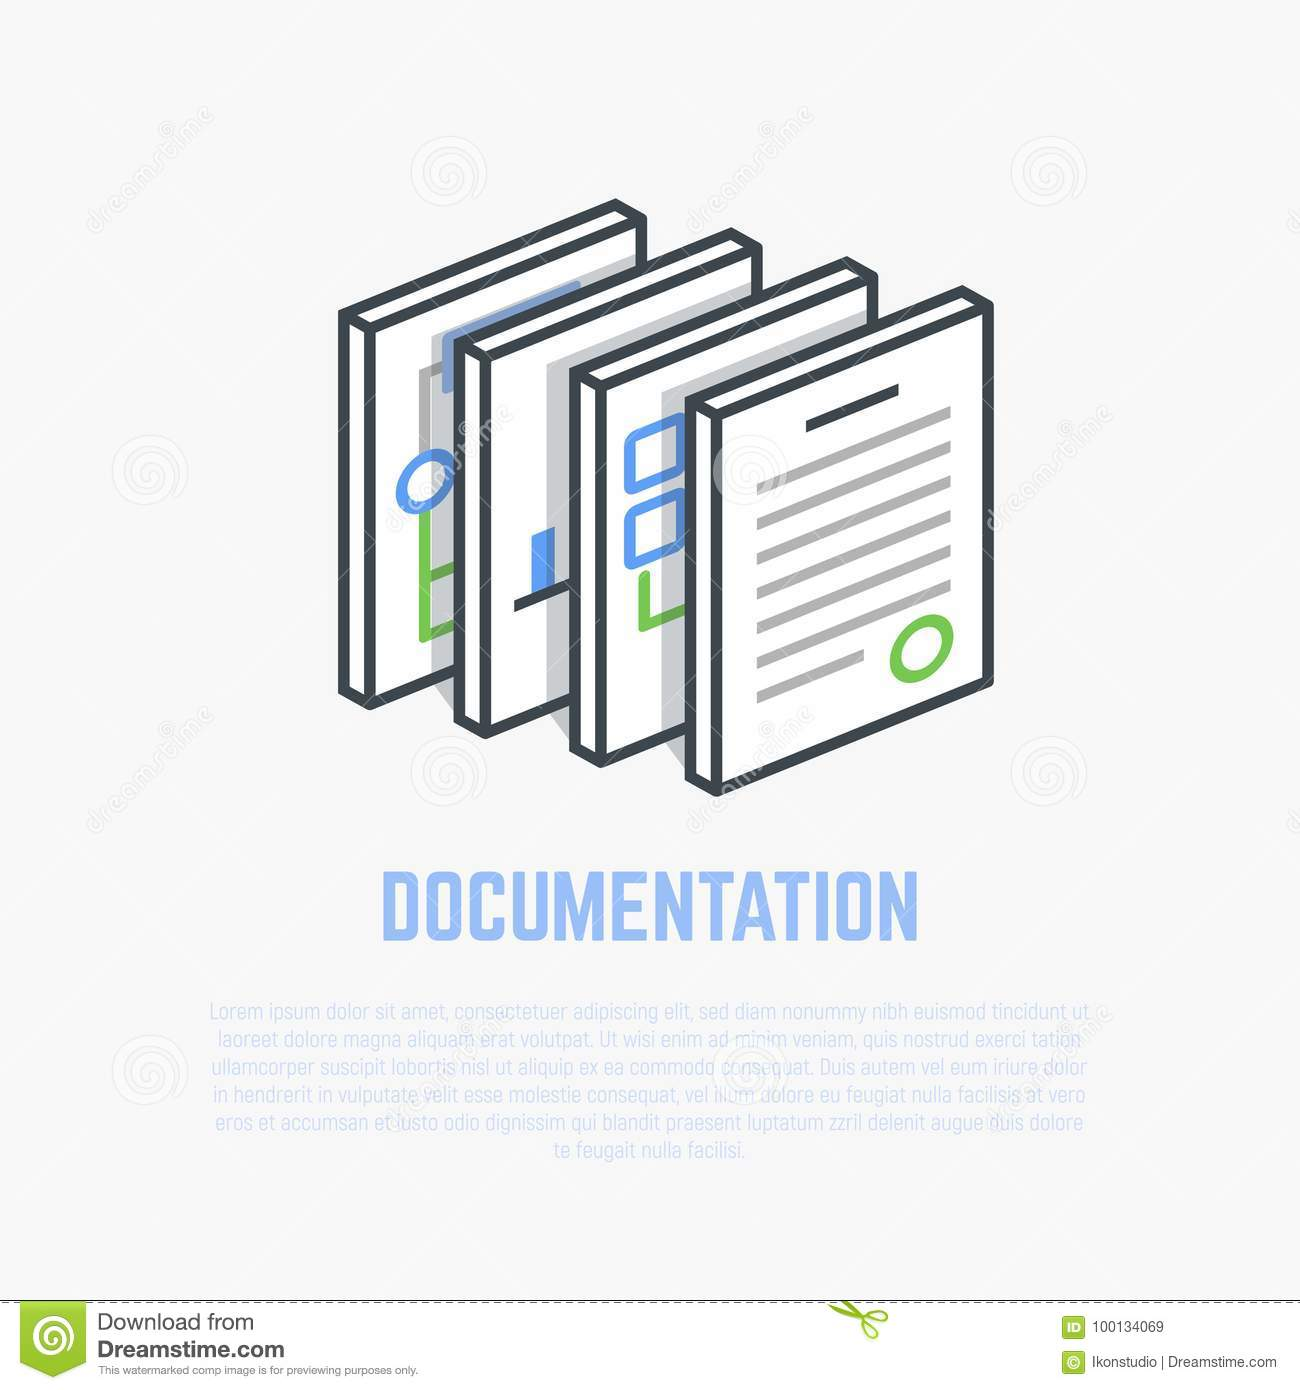 Documentation isometric illustration